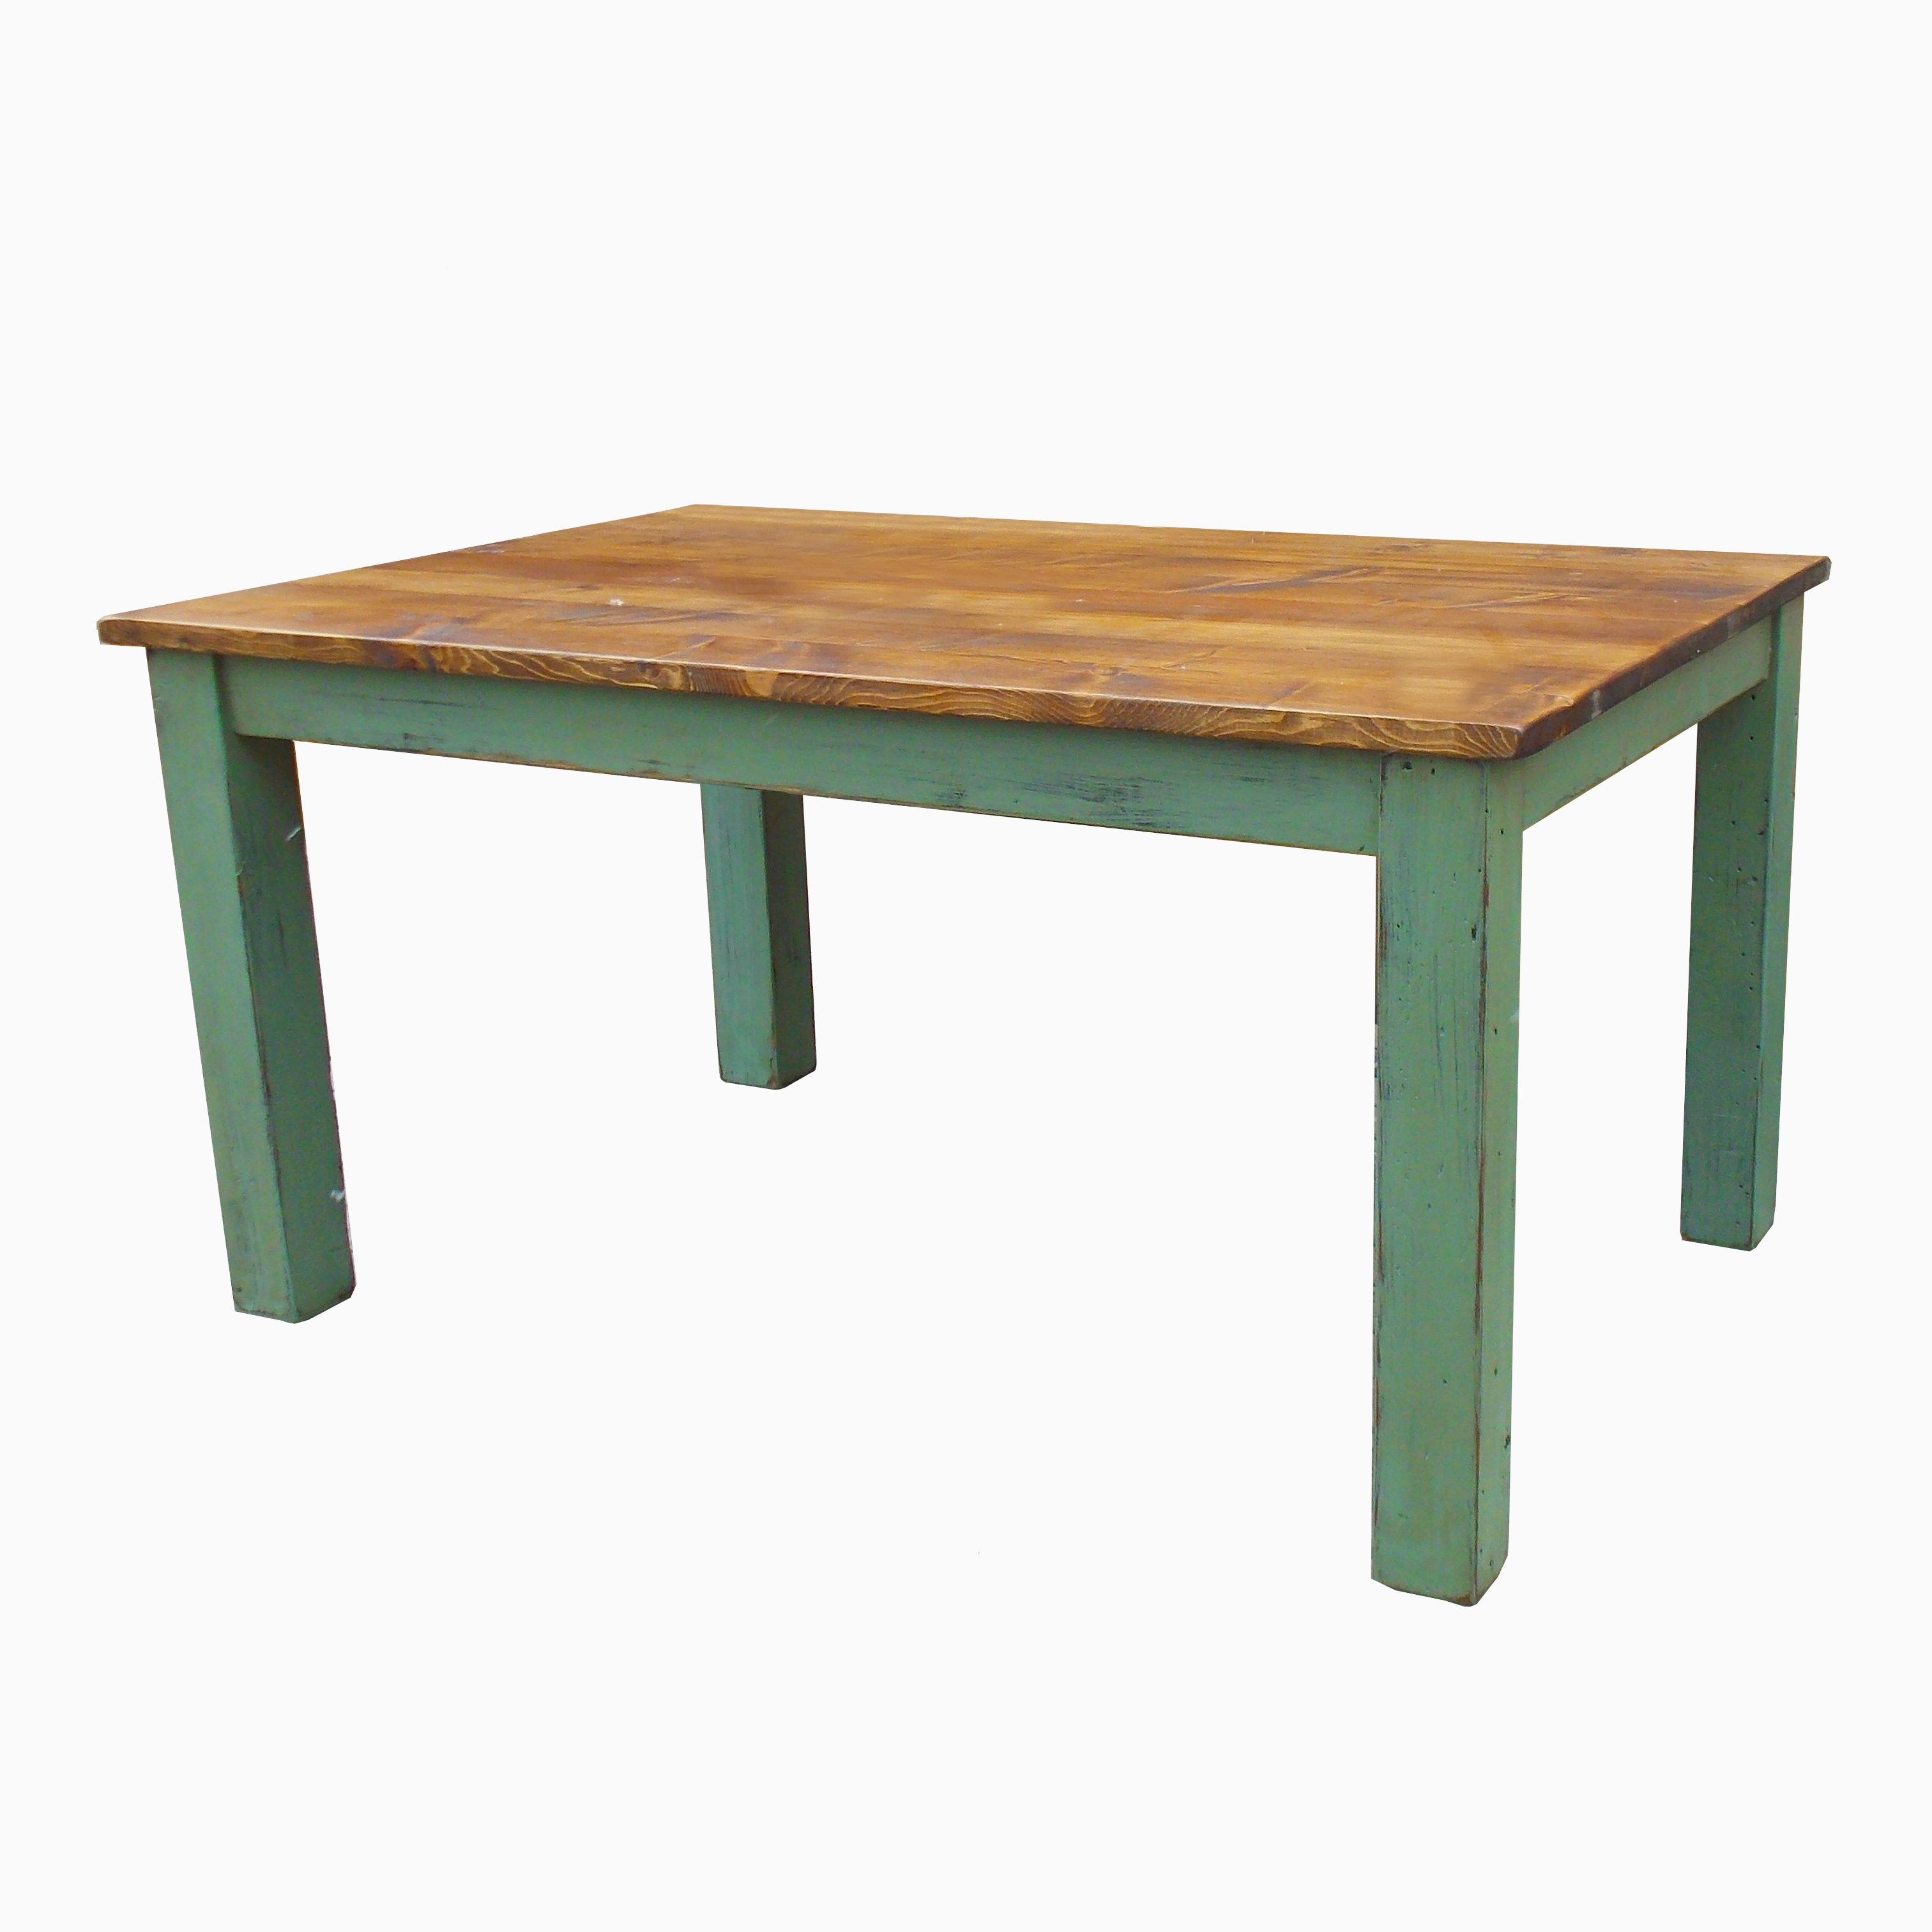 Hand Crafted Barnwood Farmhouse Dining Table by PAULS